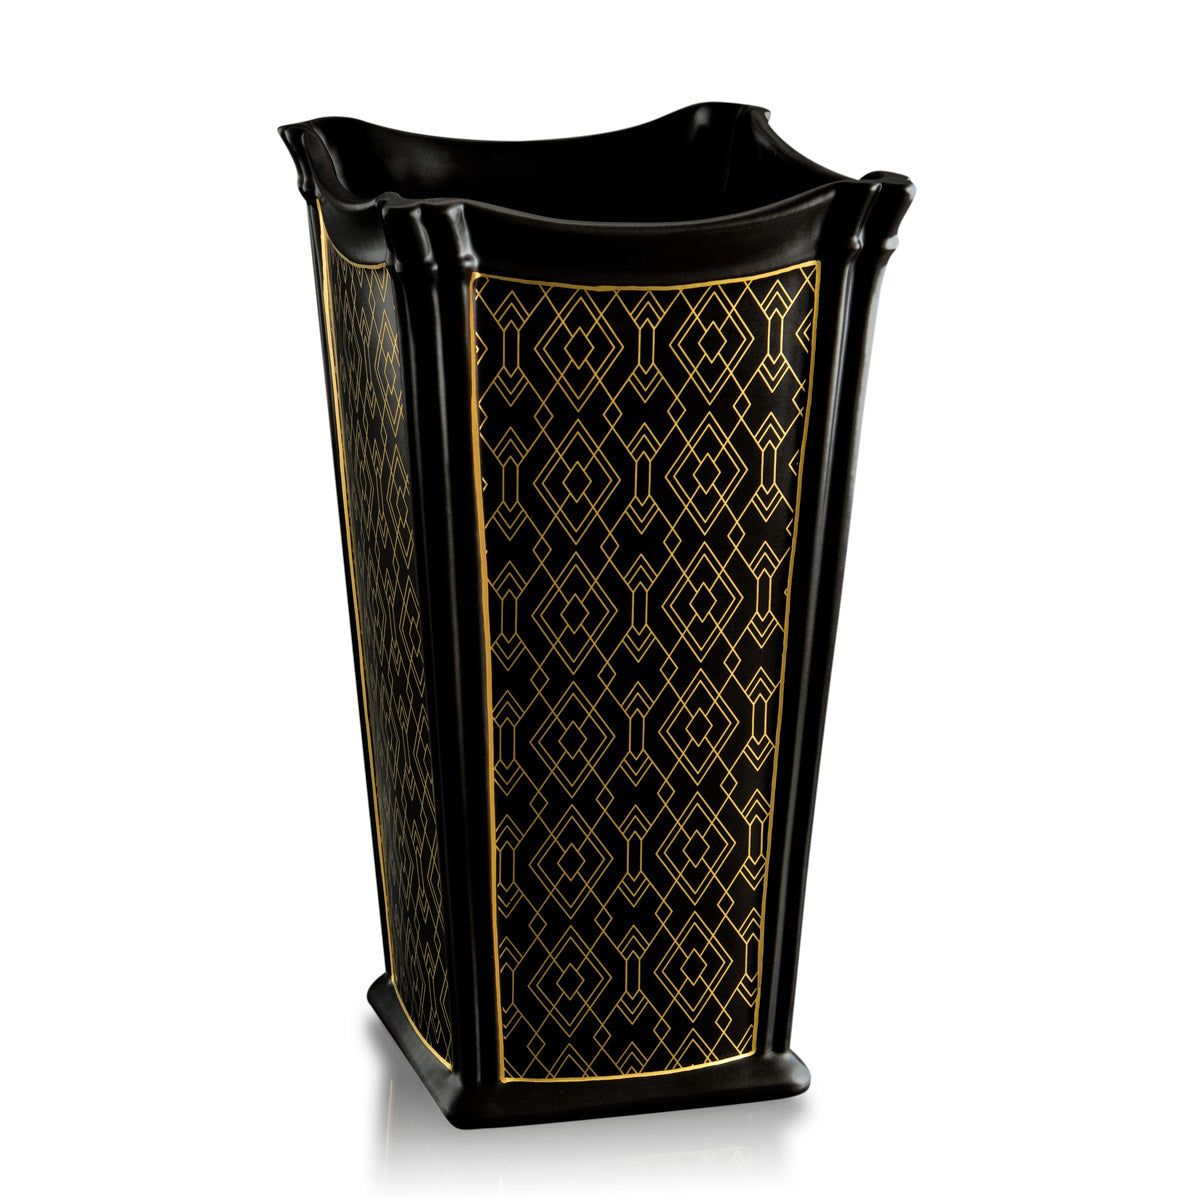 Ceramic square vase black and gold